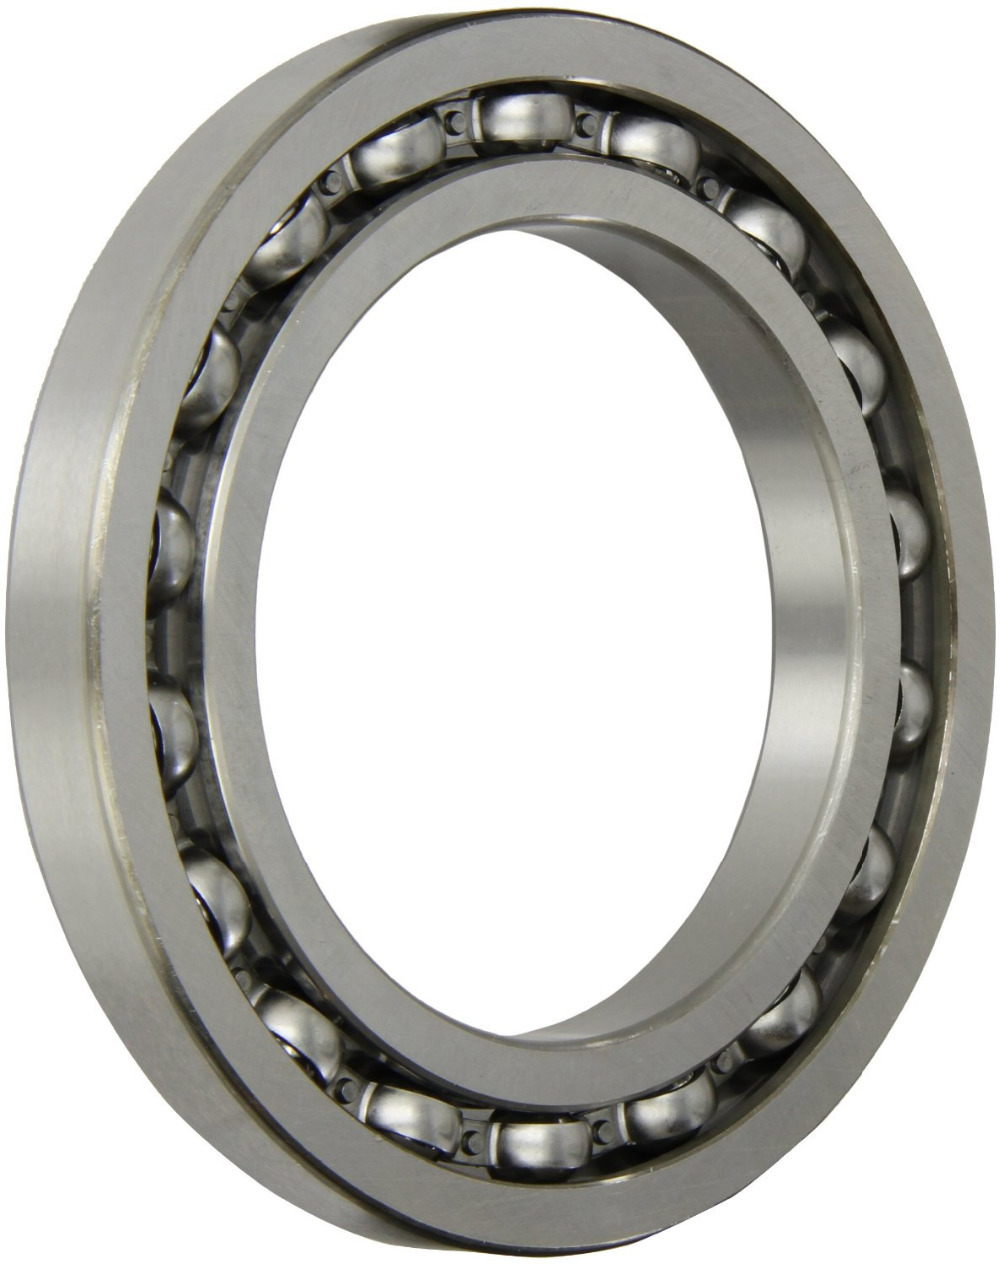 160mm 16032 160X240X25 MC Radial Bearing, Single Row, Deep Groove Design, ABEC 1 Precision, Open, Normal Clearance, Steel Cage gcr15 6326 zz or 6326 2rs 130x280x58mm high precision deep groove ball bearings abec 1 p0